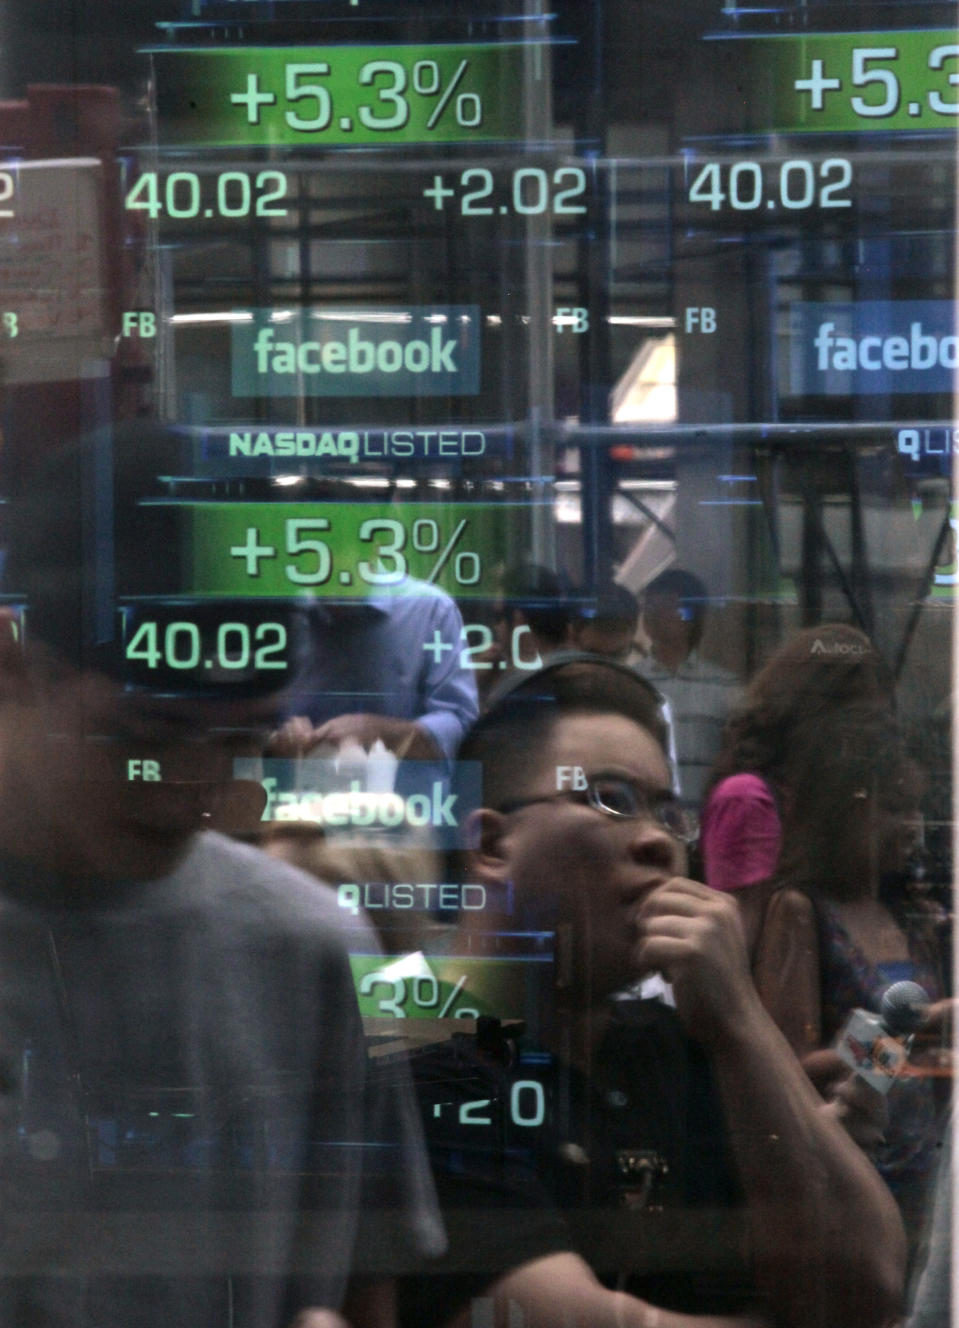 """<p> FILE - In this Friday, May 18, 2012 file photo, passers-by are reflected in the window of the Nasdaq media center as they view reports of trading activity on Facebook's stock on the Nasdaq stock market in New York. The botched offering of Facebook stock has raised several troubling questions, but at least we don't have to worry about the one that plagues most IPOs: How is it that a few select investors were able to pocket obscene profits on a surge in the stock in just a couple of hours? A look at a history of """"pops,"""" and why Facebook's flat debut may not be so bad after all. (AP Photo/Bebeto Matthews, File) </p>"""